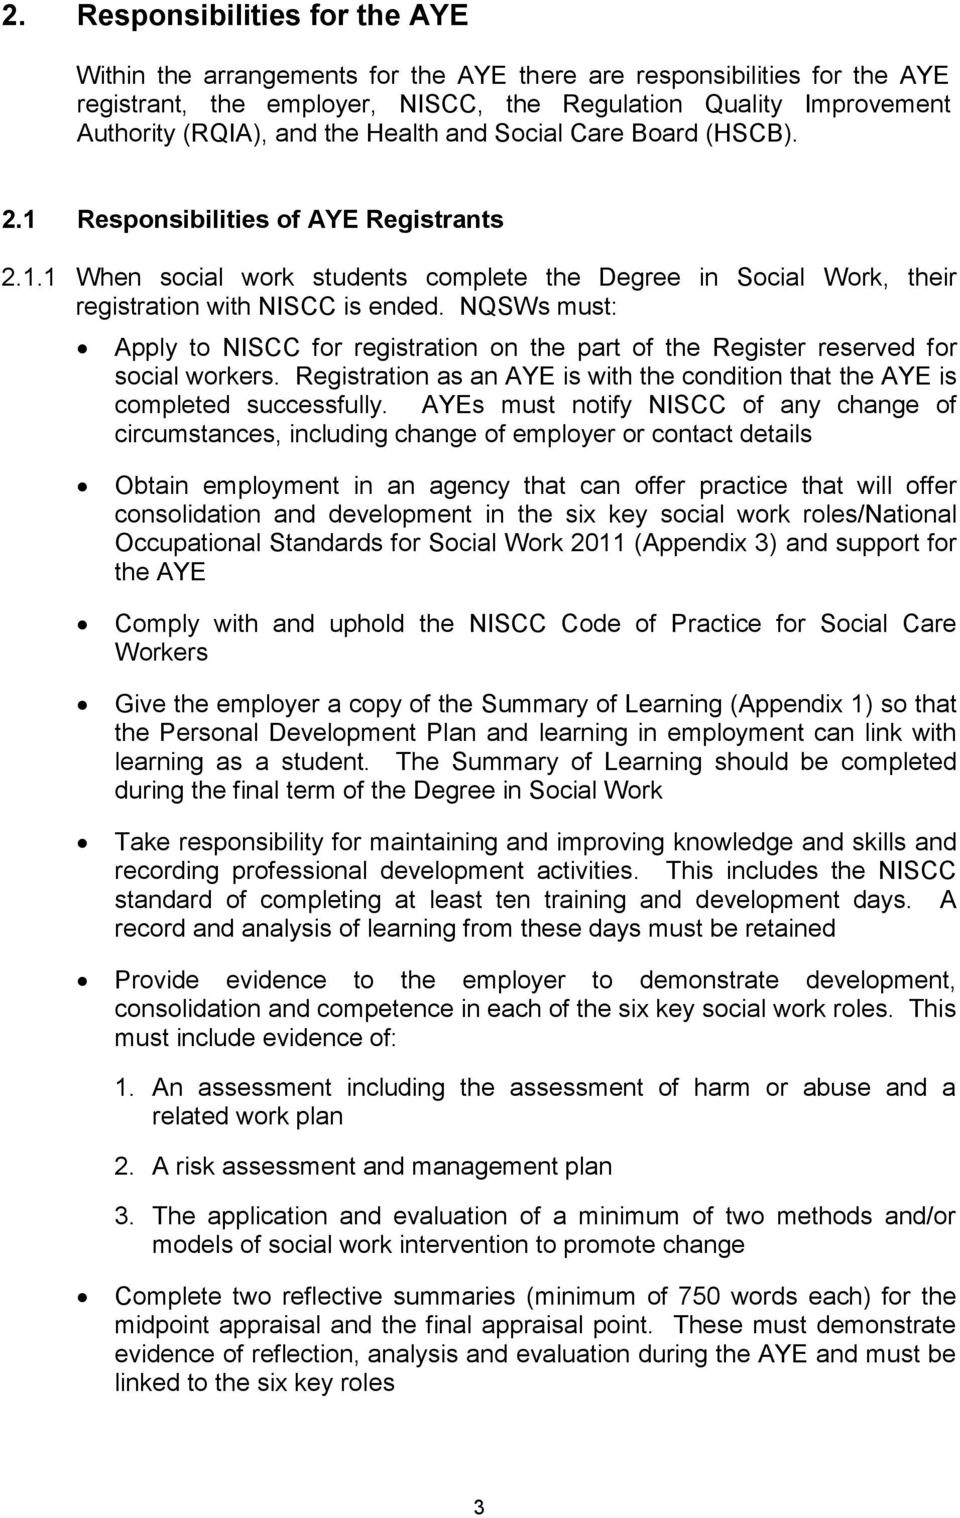 NQSWs must: Apply to NISCC for registration on the part of the Register reserved for social workers. Registration as an AYE is with the condition that the AYE is completed successfully.